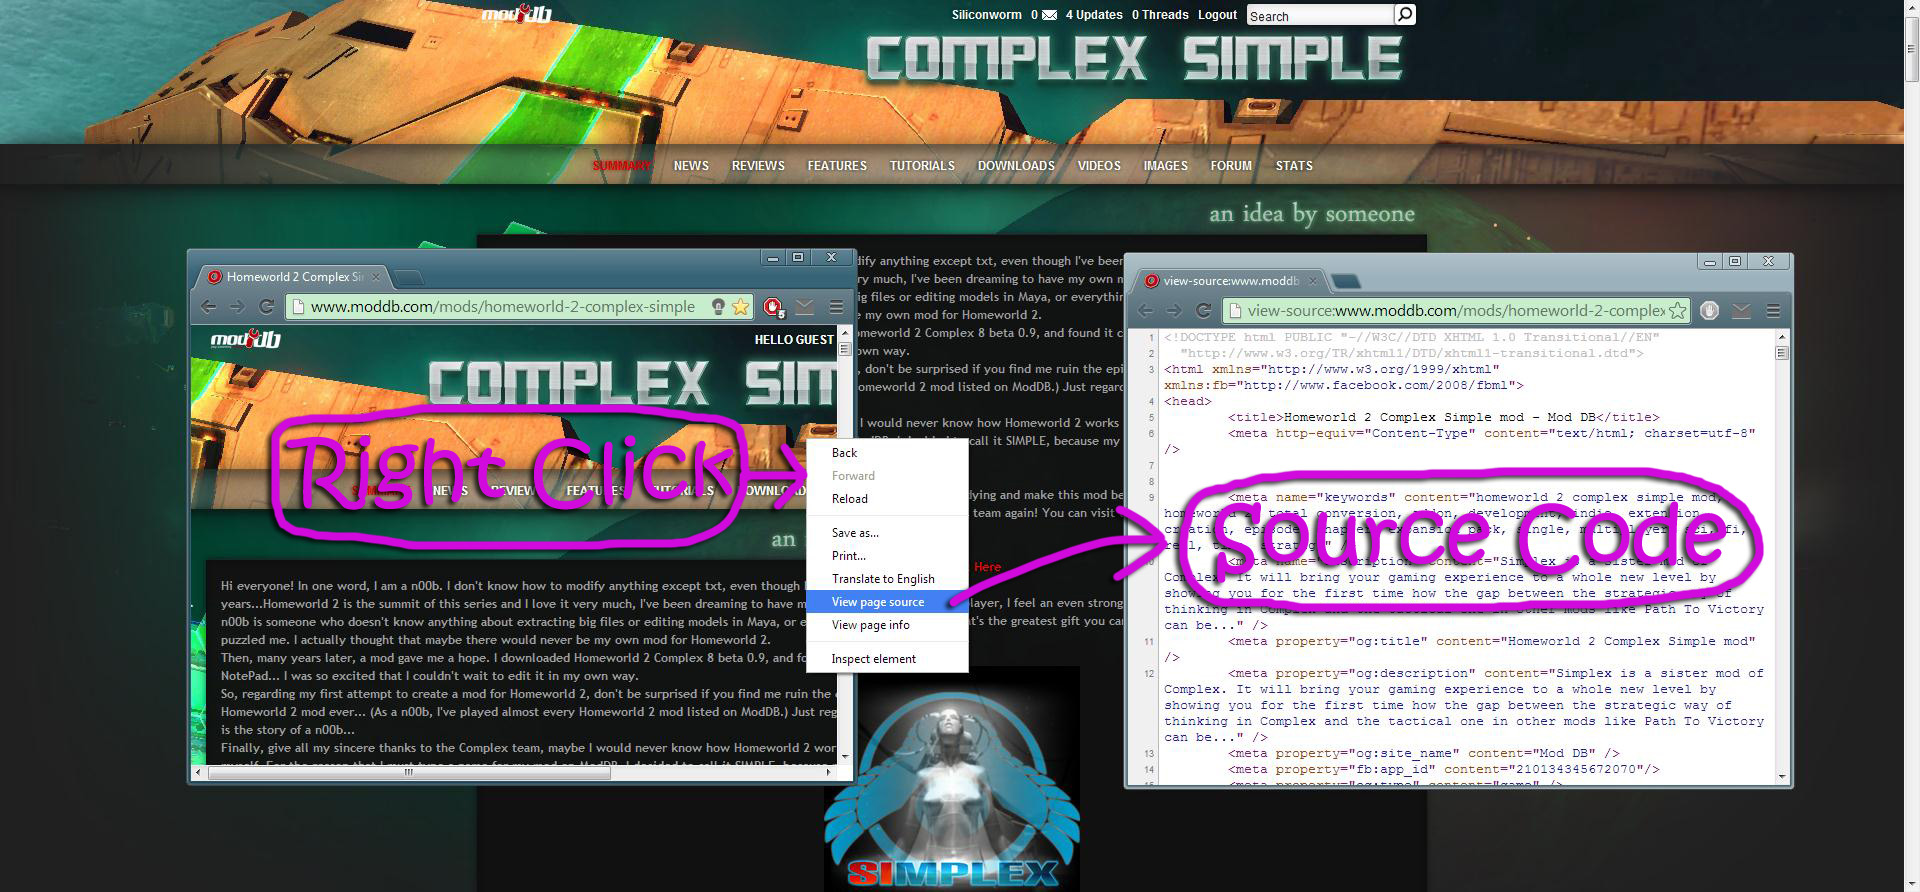 Tutorial Pic: Extracting Page Source Code image - Homeworld